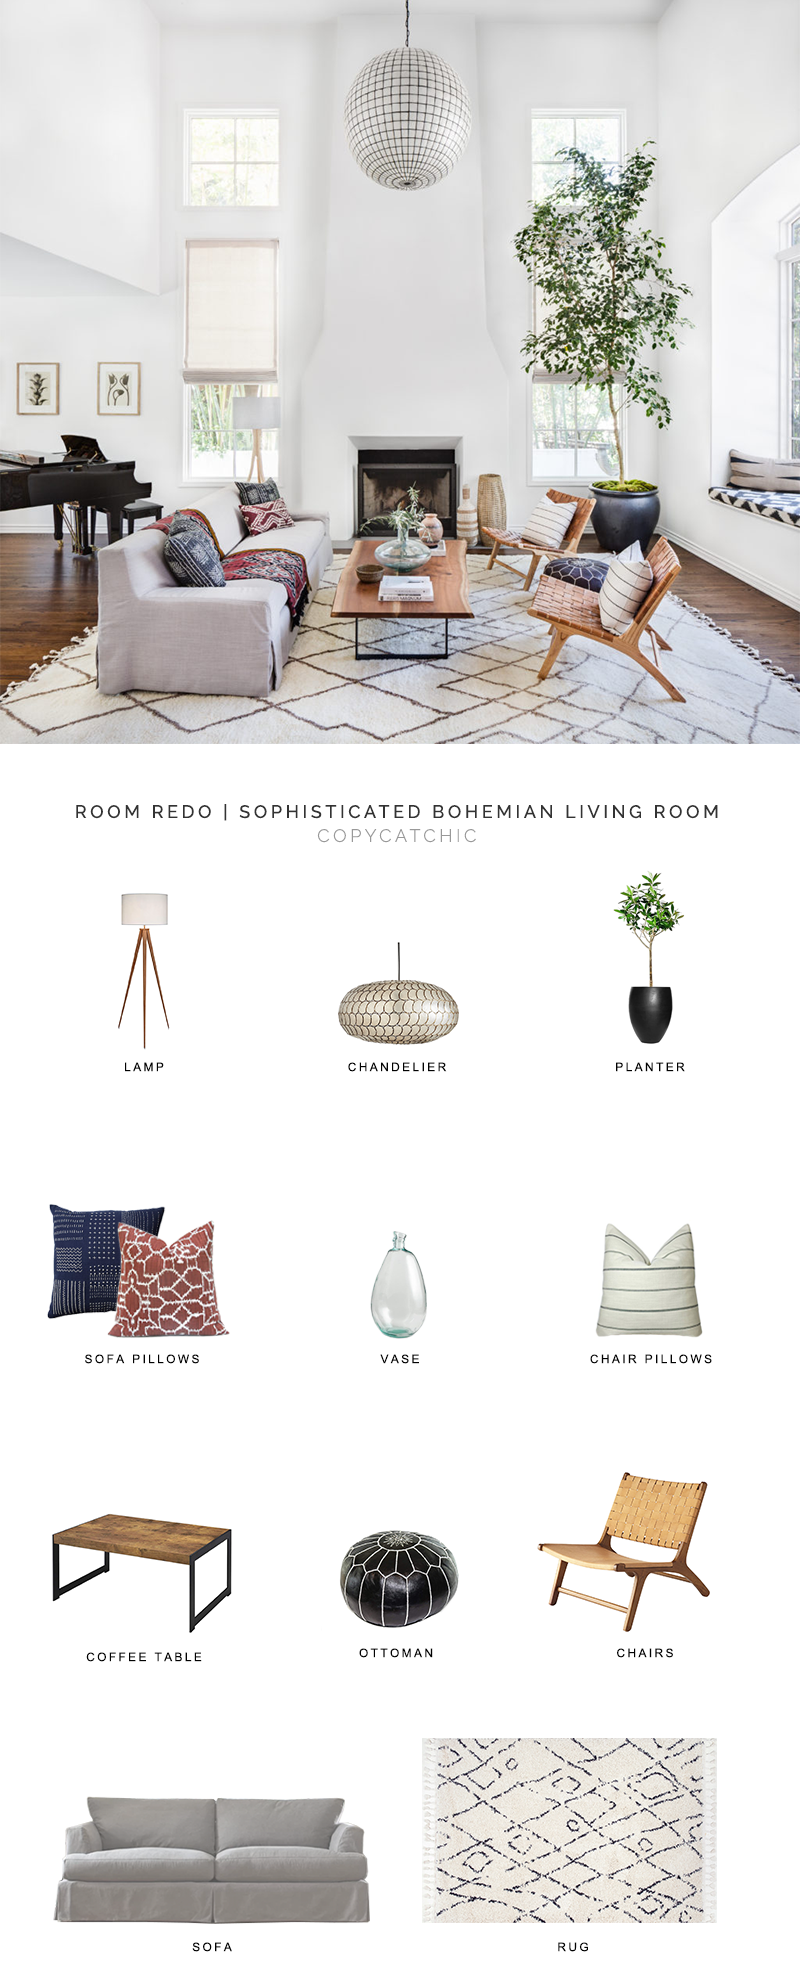 modern bohemian living room look for less, copycatchic luxe living for less, budget home decor and design, daily finds, home trends, sales, budget travel and room redos